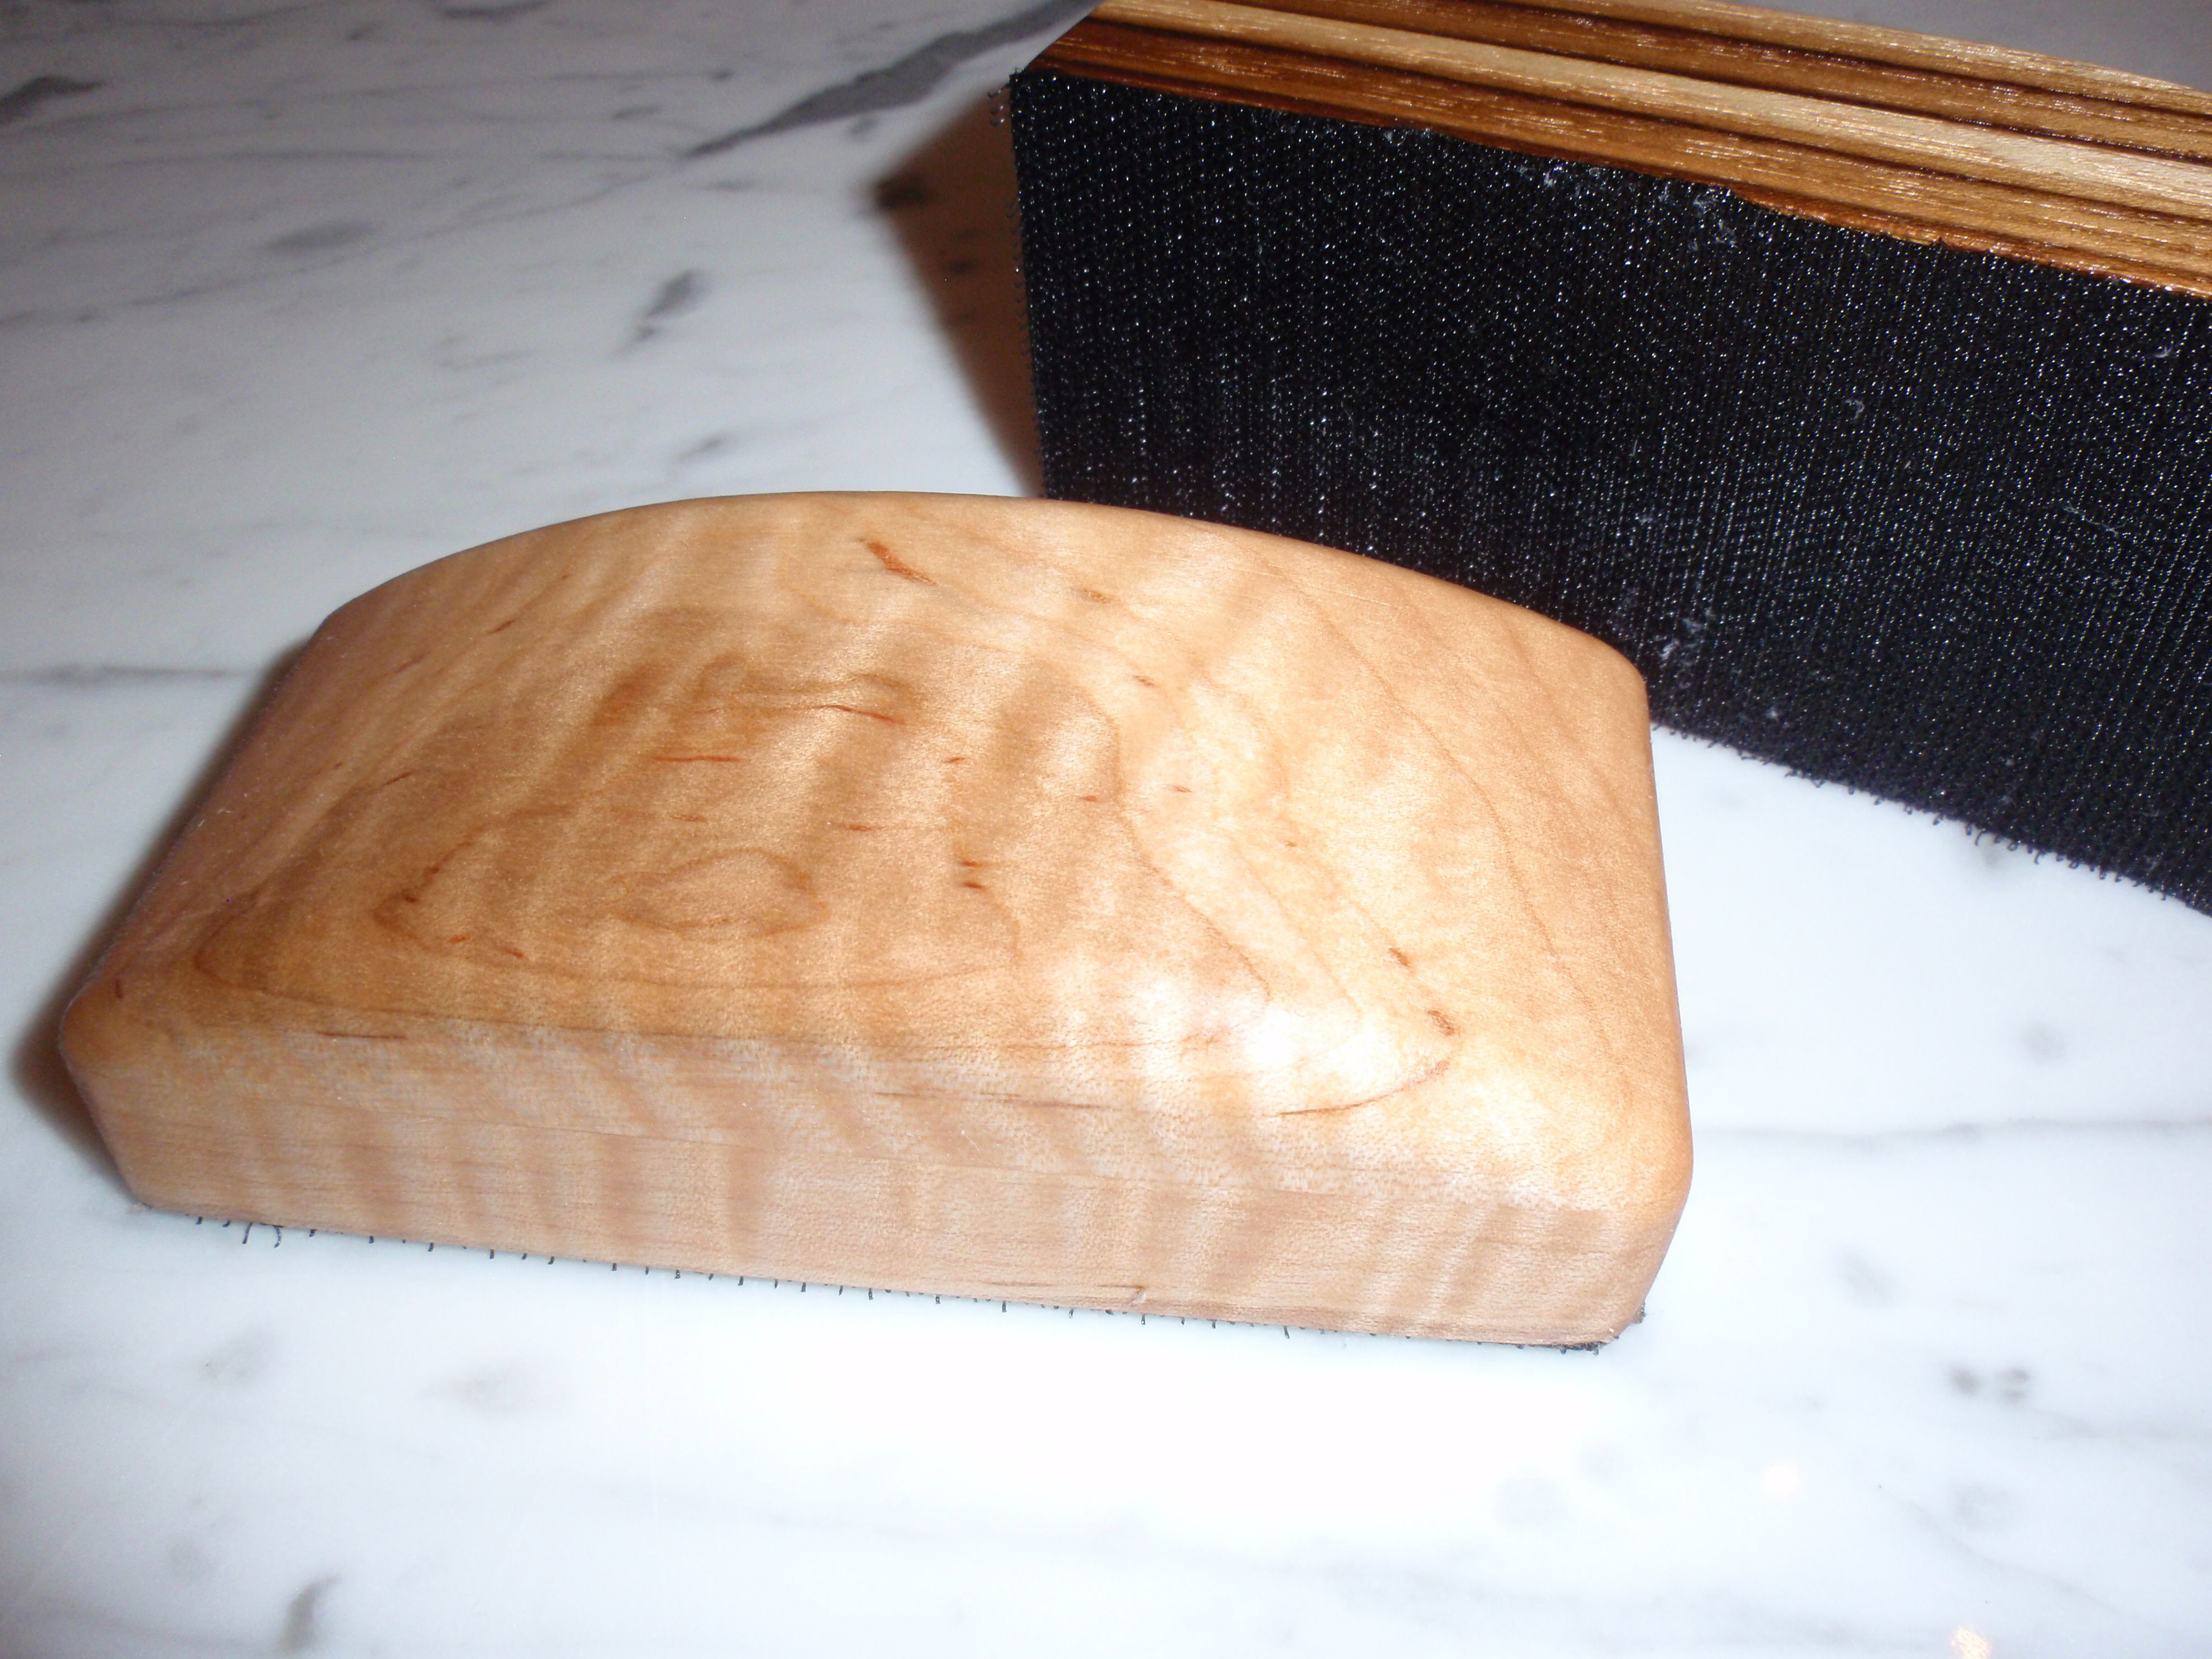 Handcrafted Curly Maple Sanding Block Designed For Hook Loop Sandpaper Sanding Blocks Sanding Block Sanding